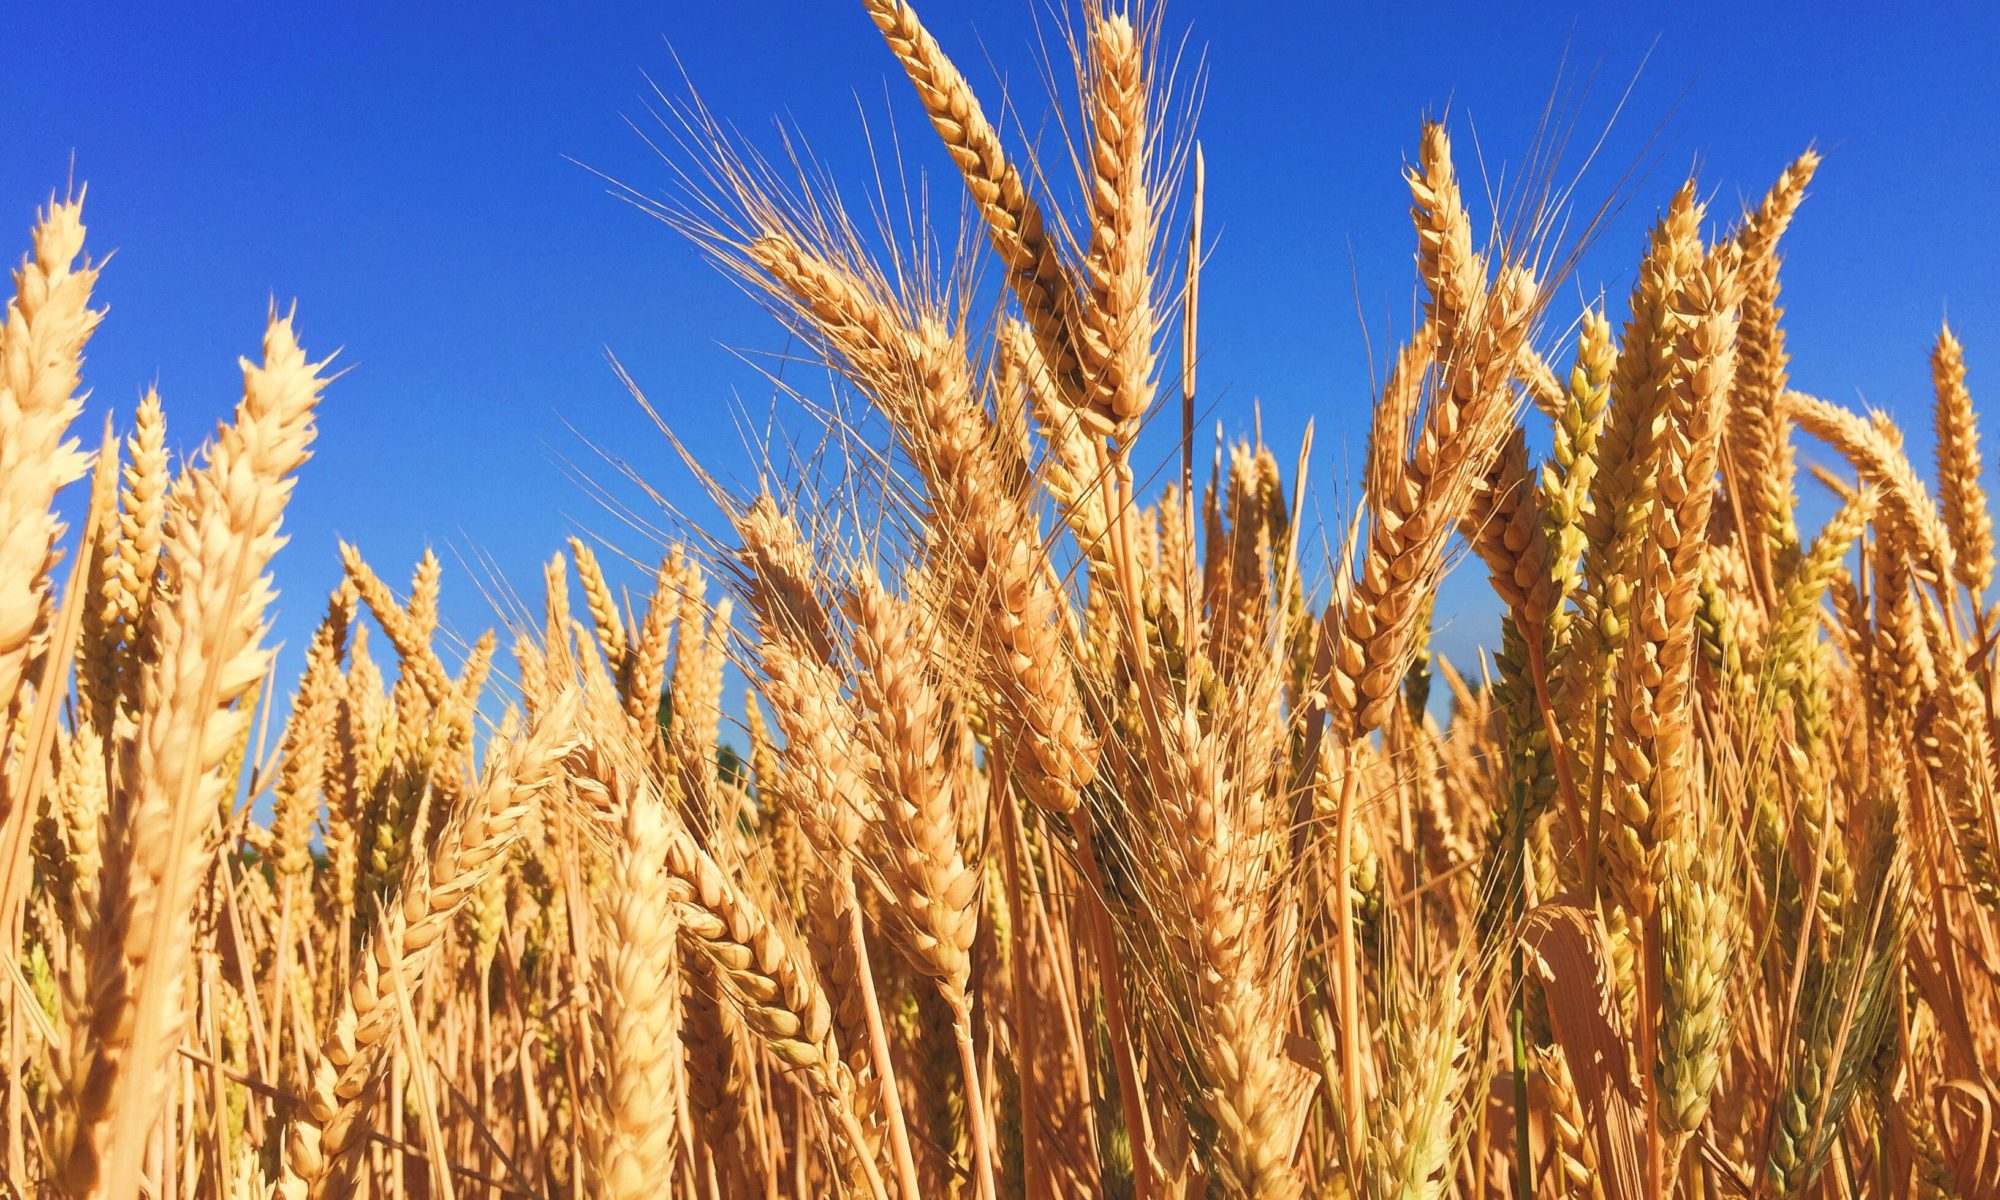 Picture o fcorn against a blue sky background